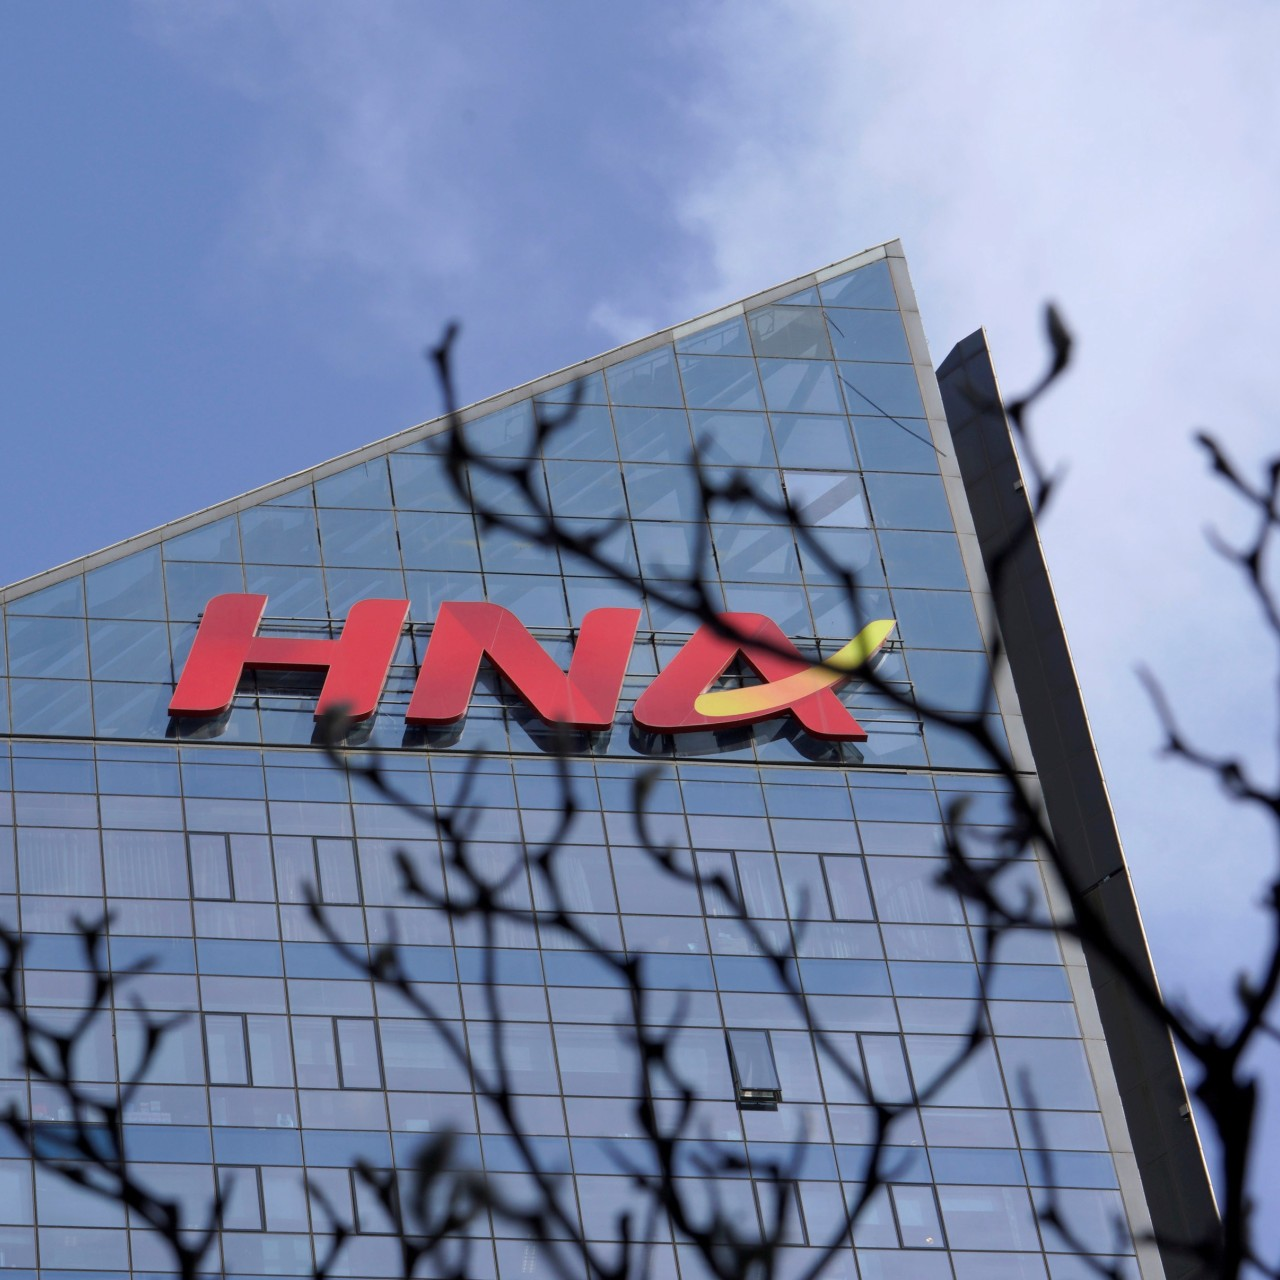 RRJ-led group in talks to invest US$4 billion in HNA's